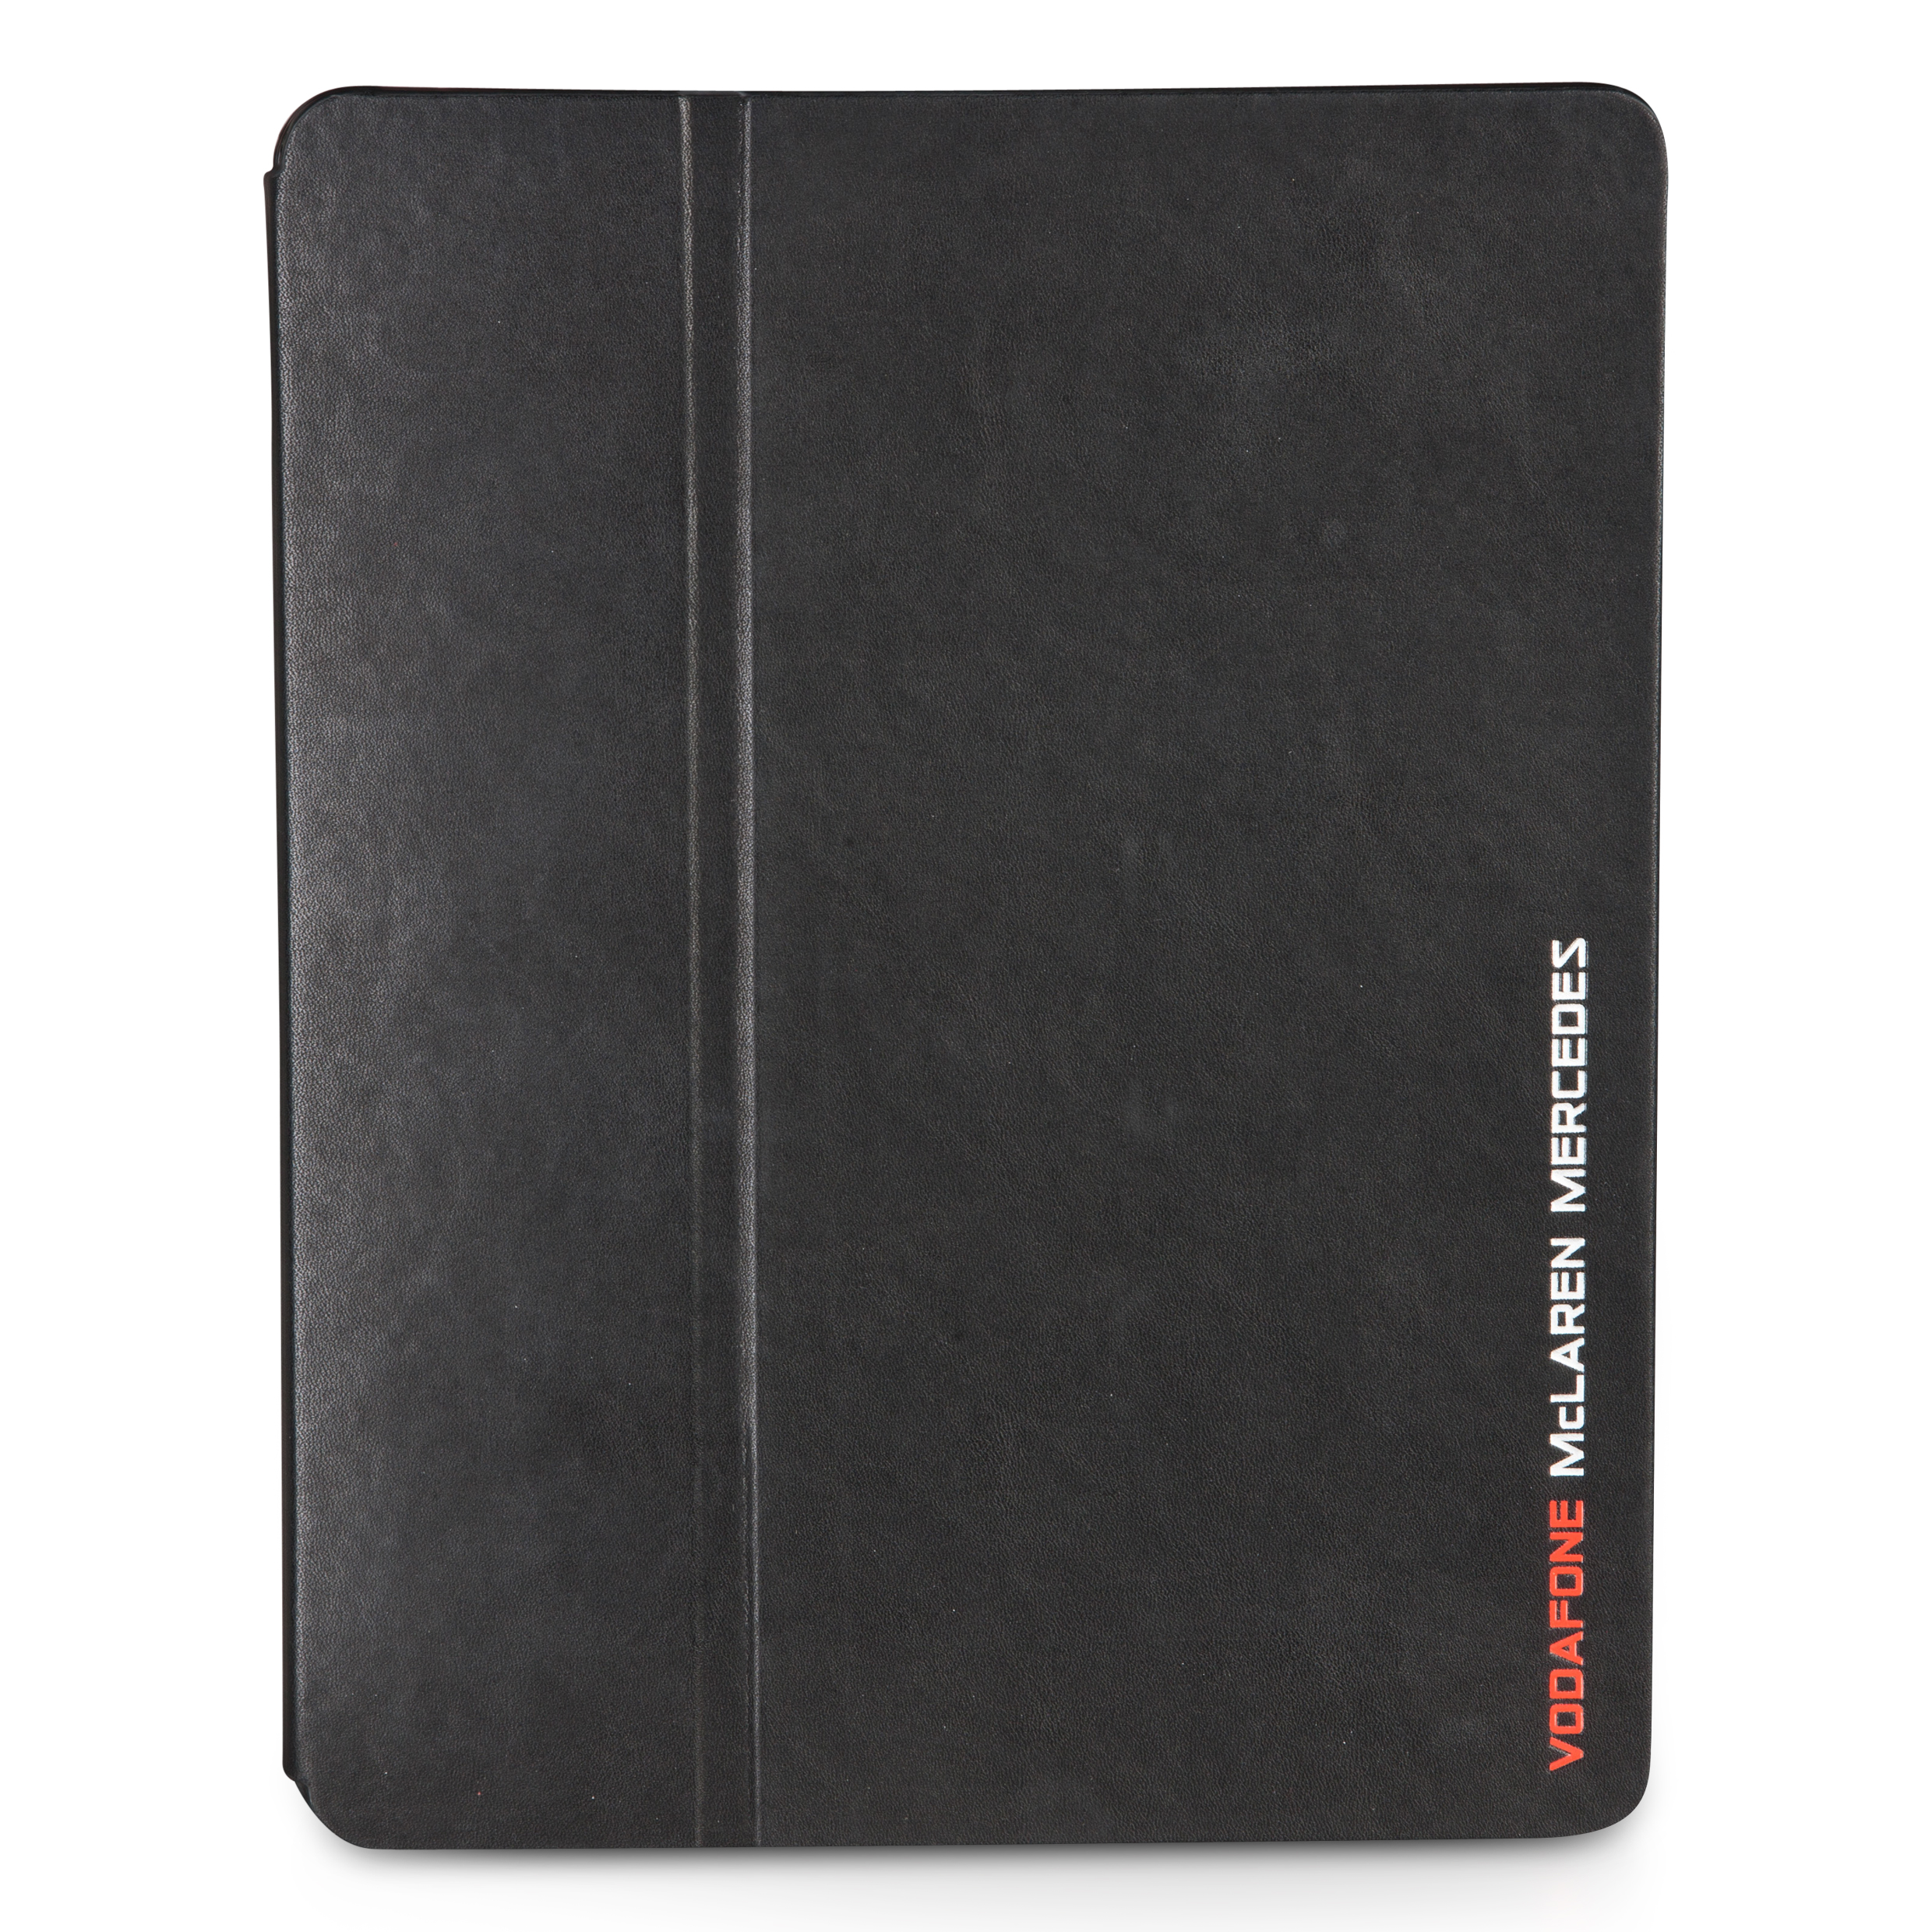 Vodafone McLaren Mercedes Premium Folio Case for iPad Black